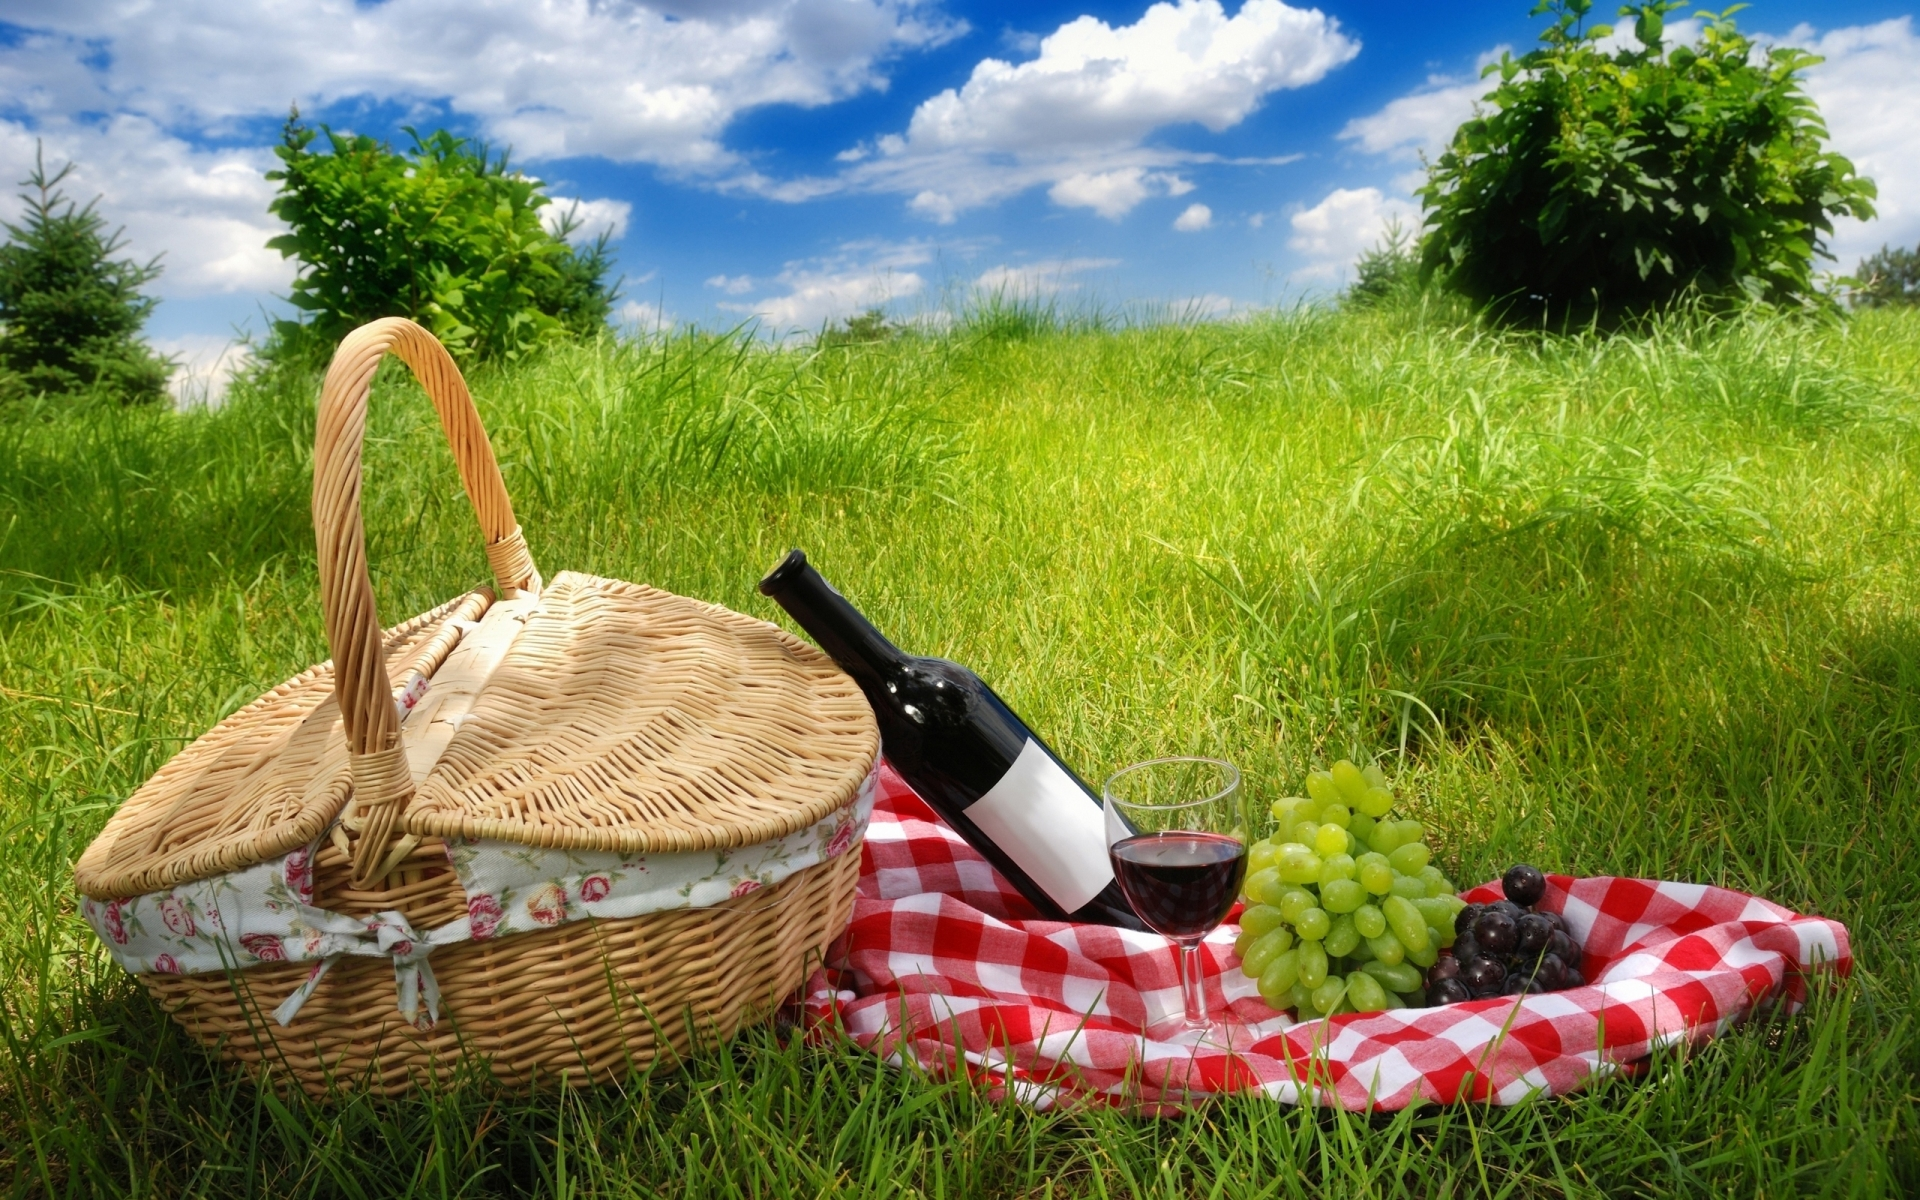 Picnic for 1920 x 1200 widescreen resolution